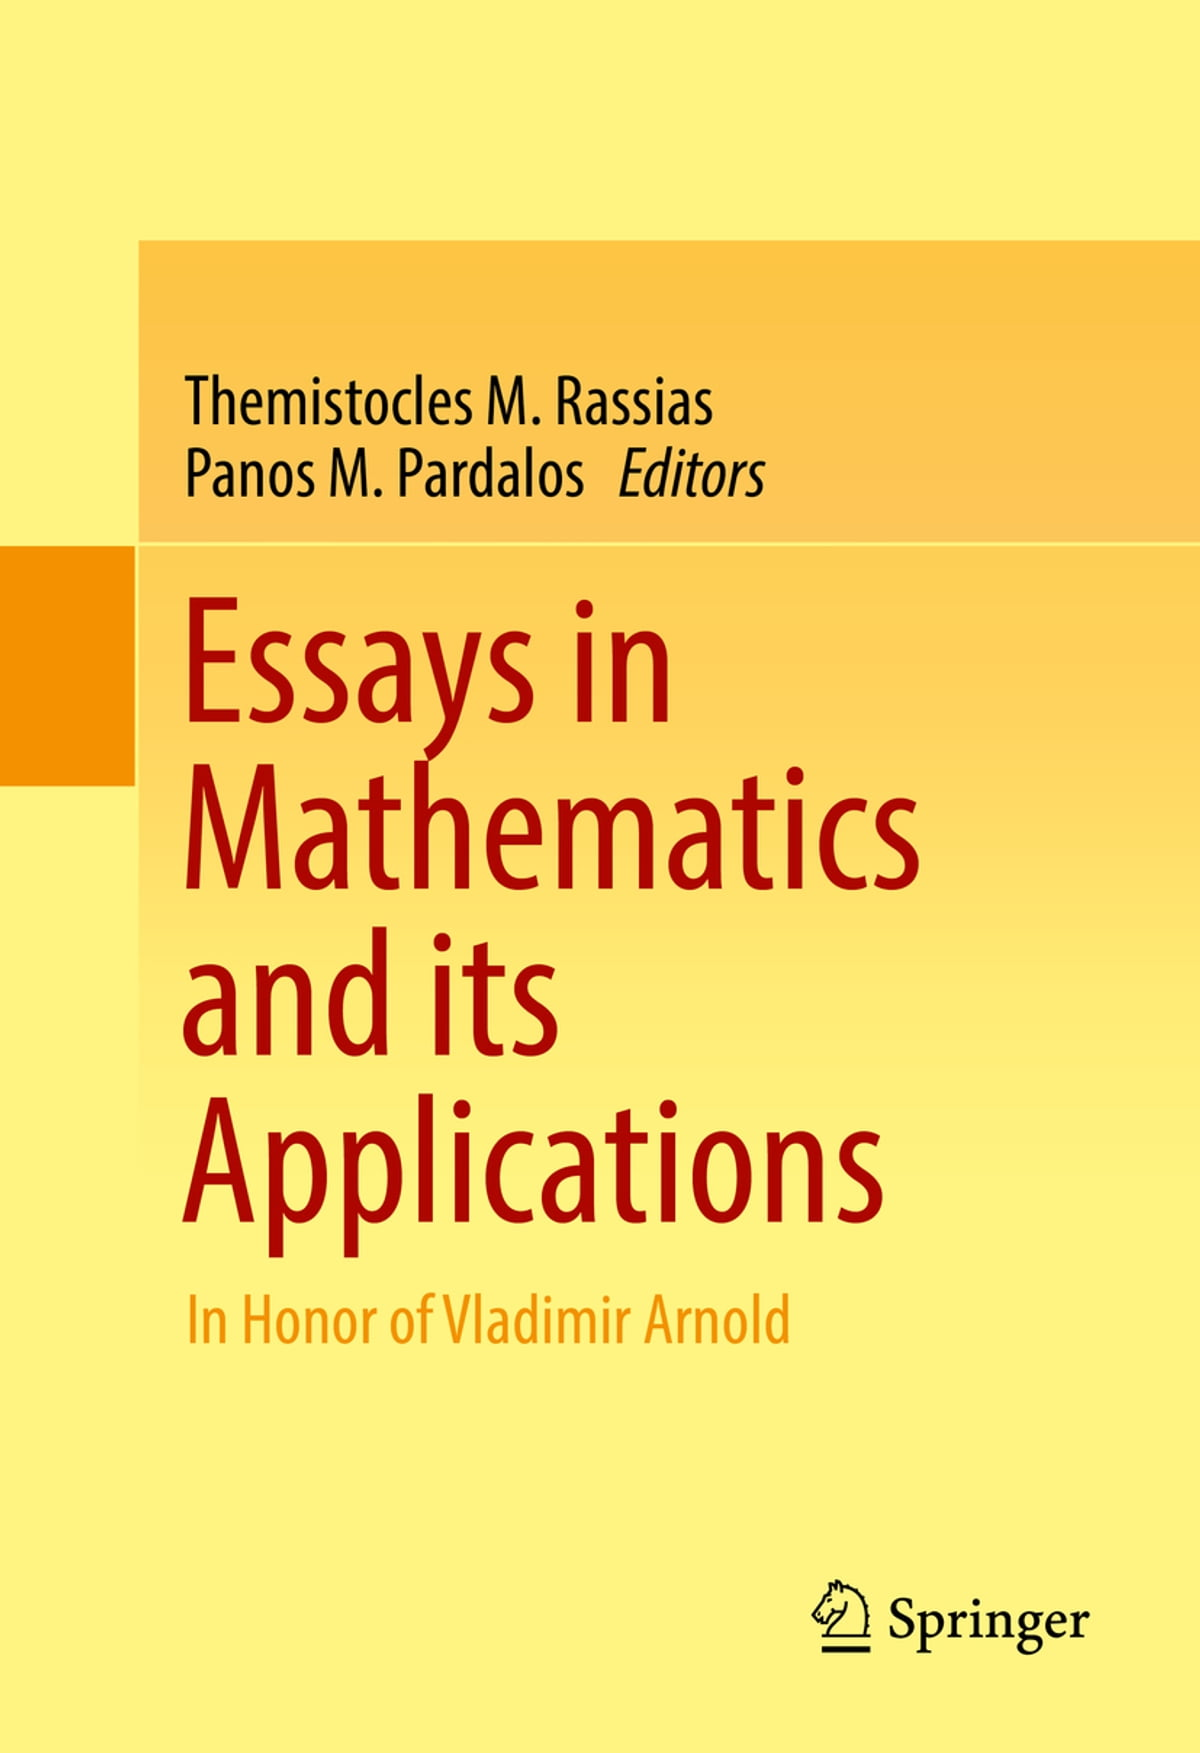 Essays in mathematics and its applications ebook by essays in mathematics and its applications ebook by 9783319313382 rakuten kobo fandeluxe Choice Image